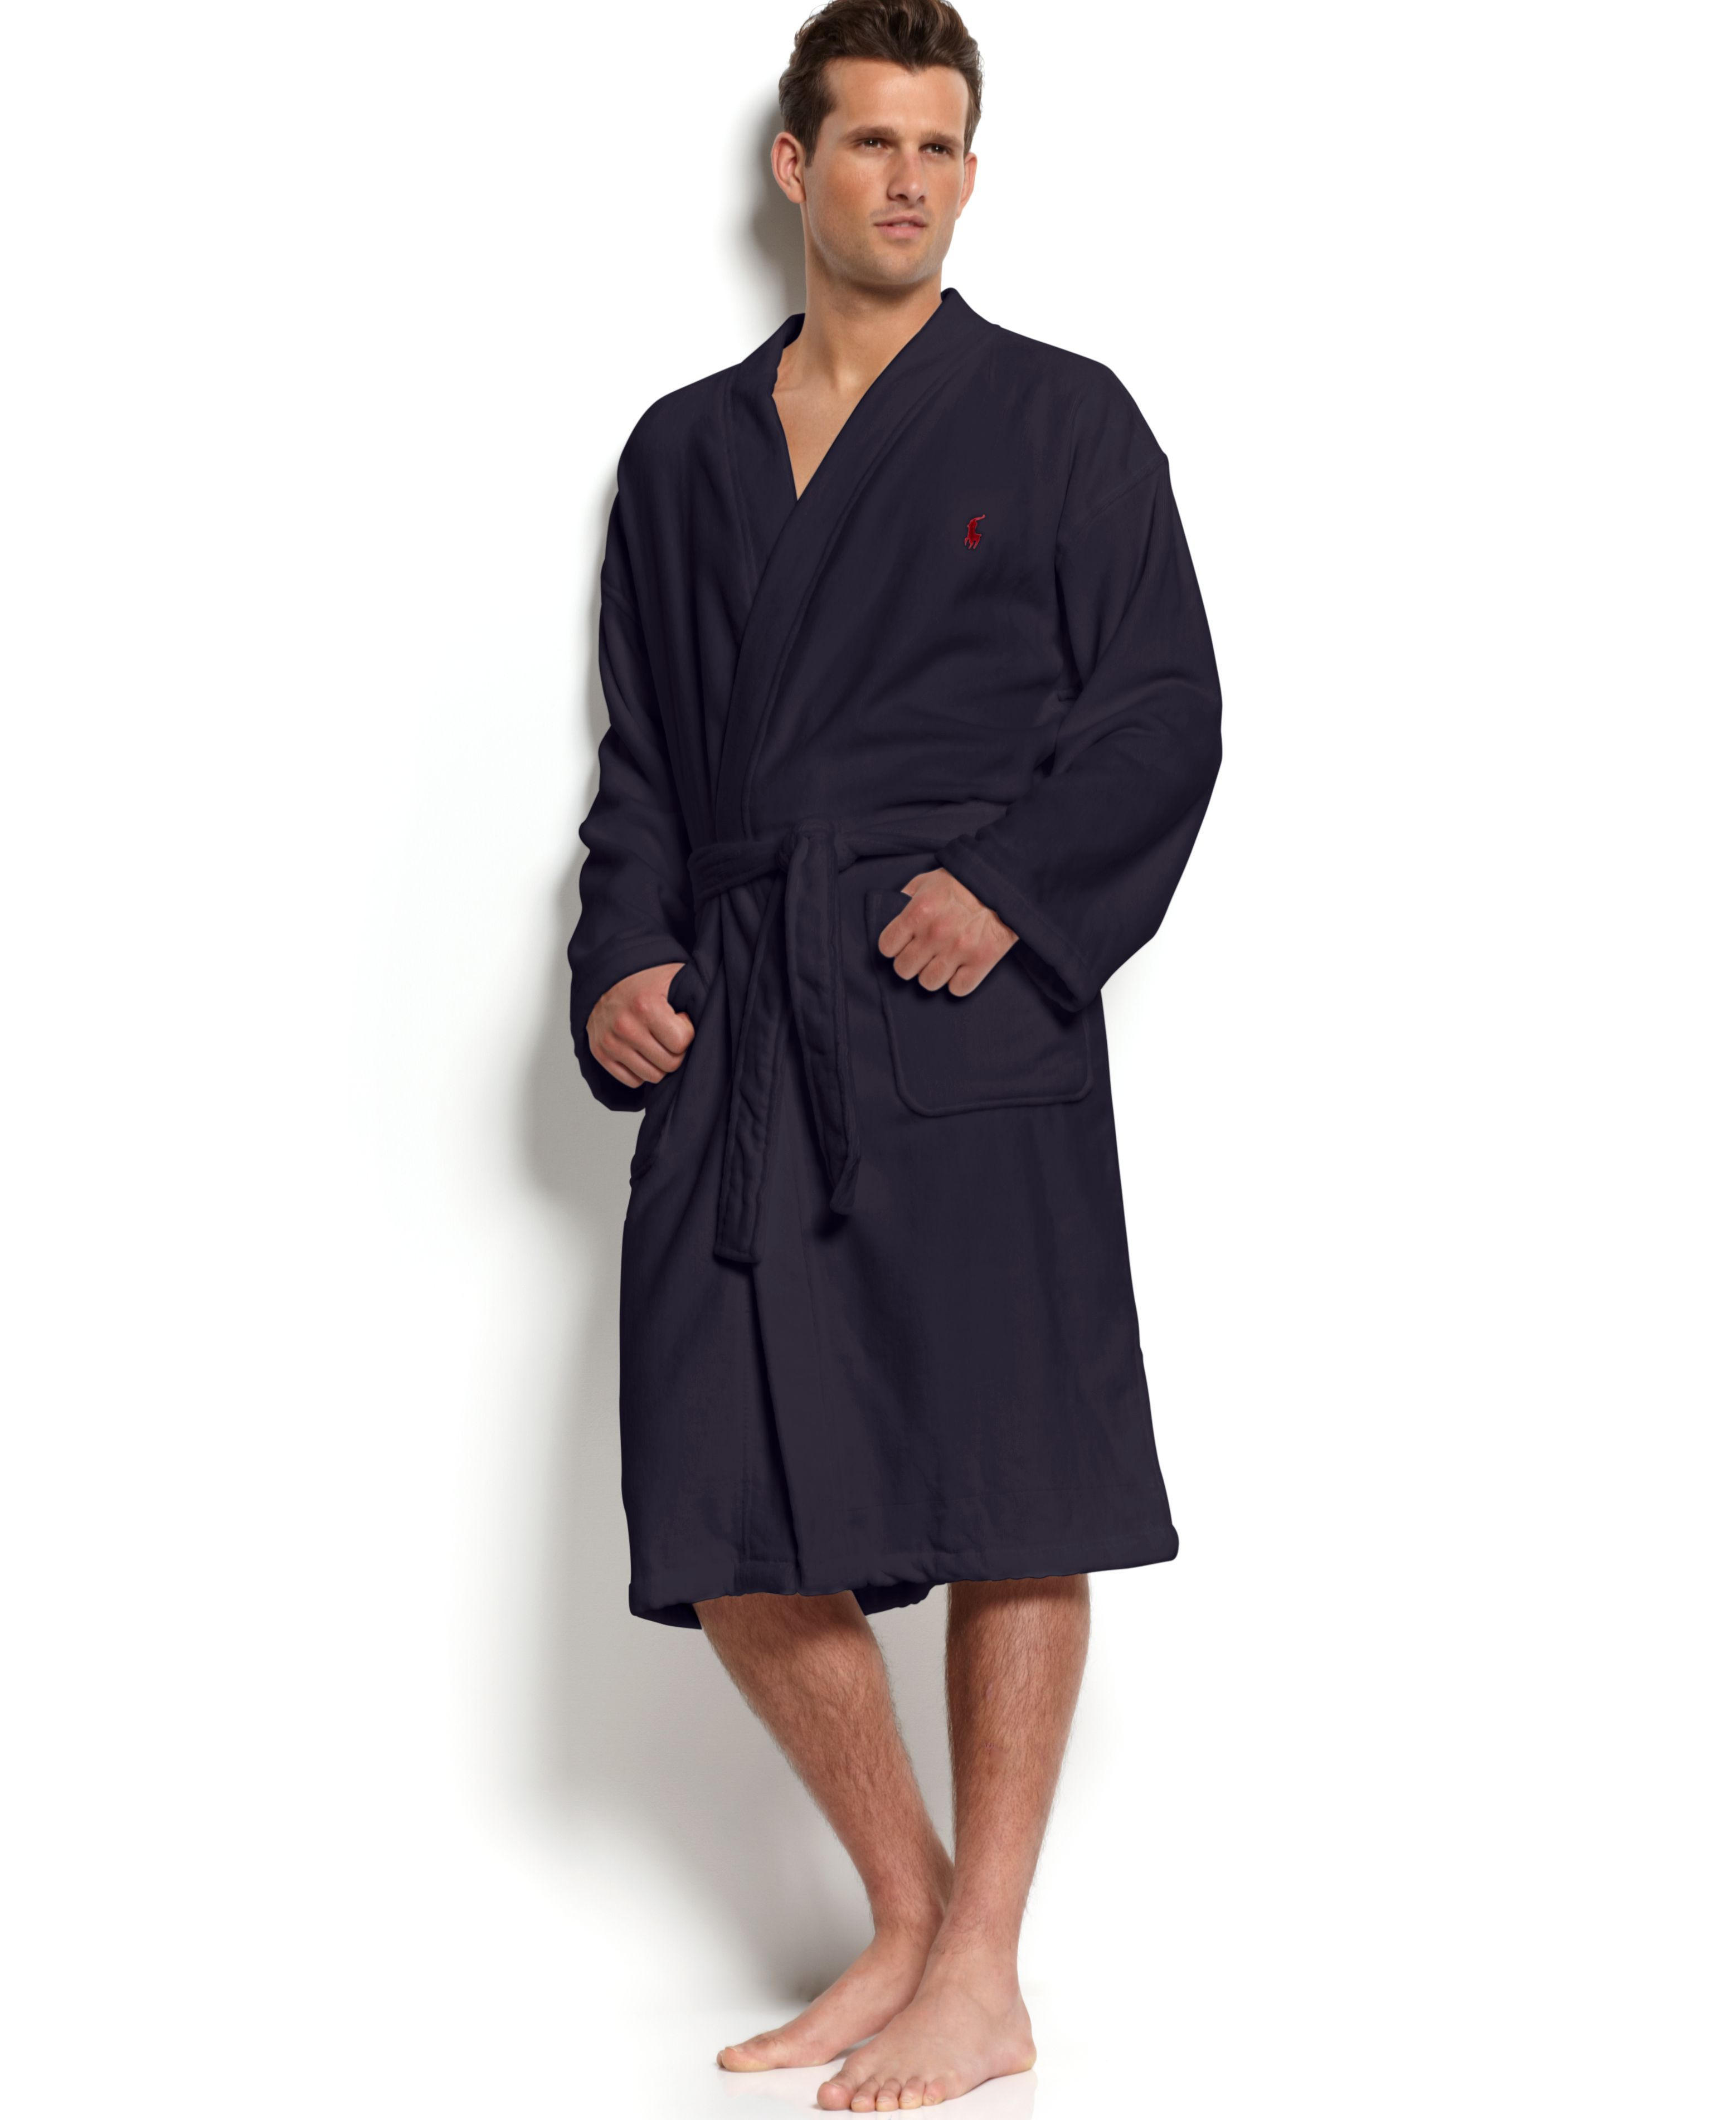 polo ralph lauren men 39 s sleepwear soft cotton kimono velour robe polo ralph lauren kimonos. Black Bedroom Furniture Sets. Home Design Ideas